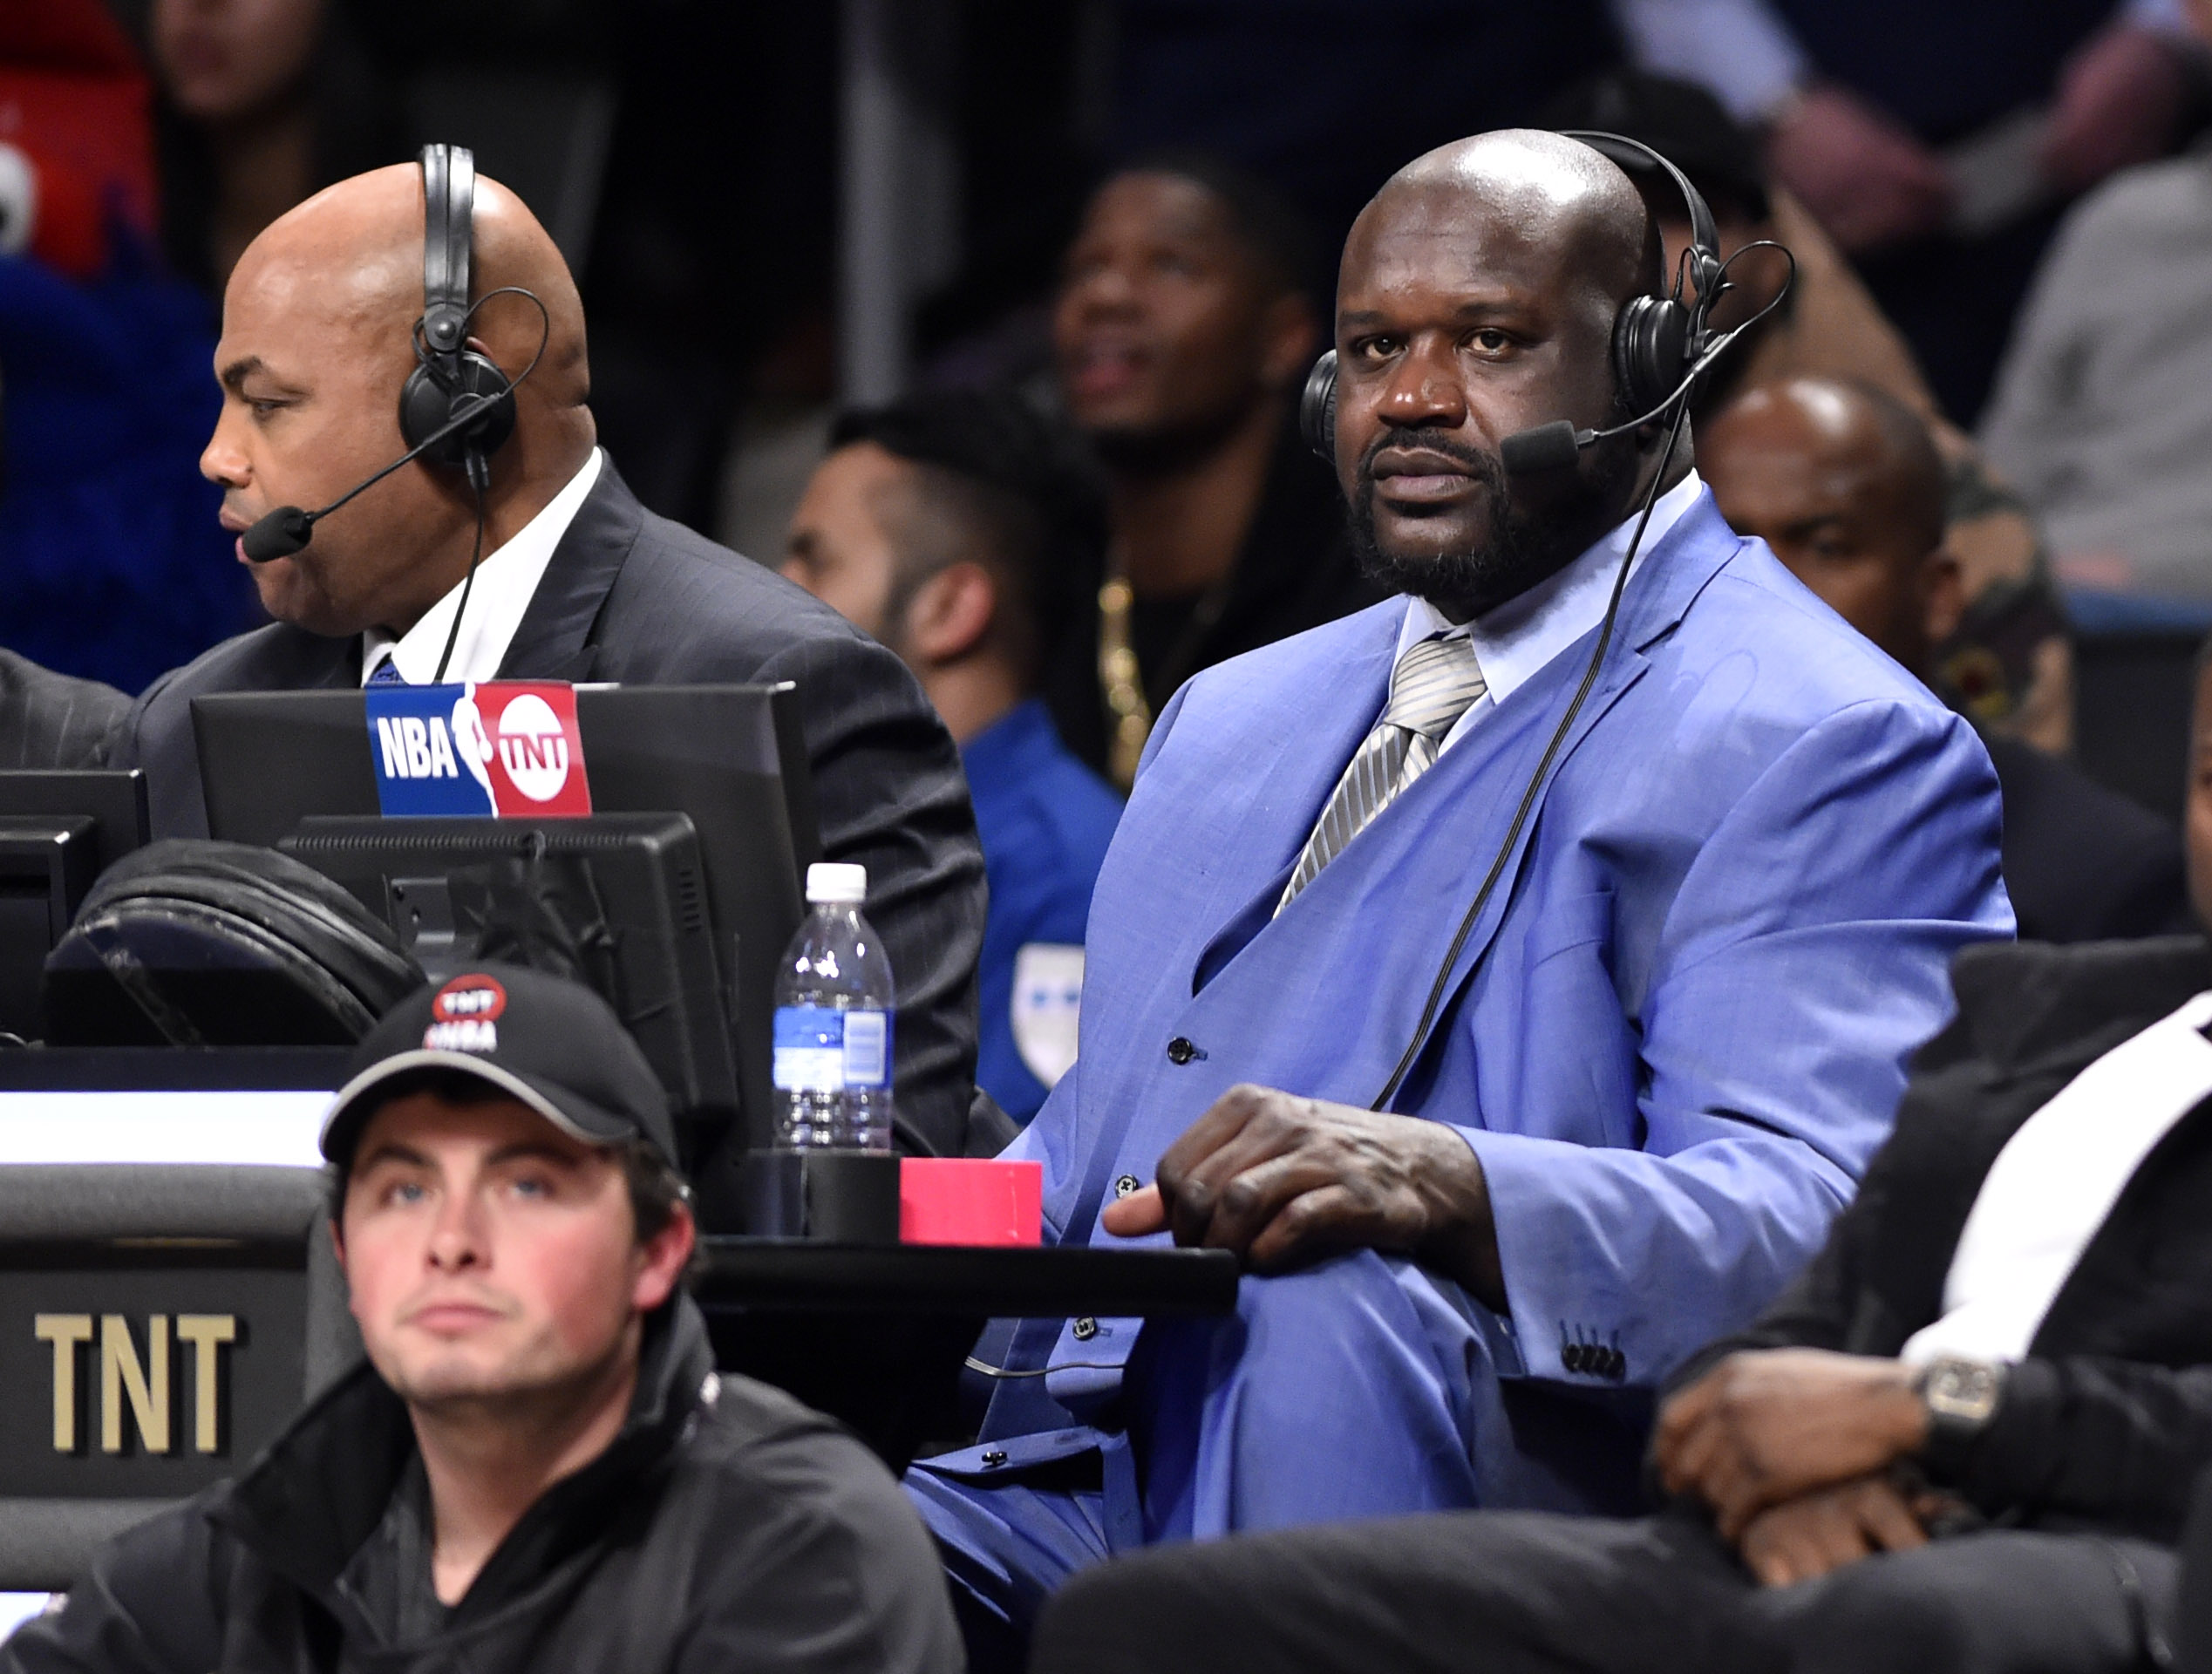 Shaquille O'Neal during the NBA All Star Saturday Night at Air Canada Centre. (Photo: Bob Donnan, USA TODAY Sports)